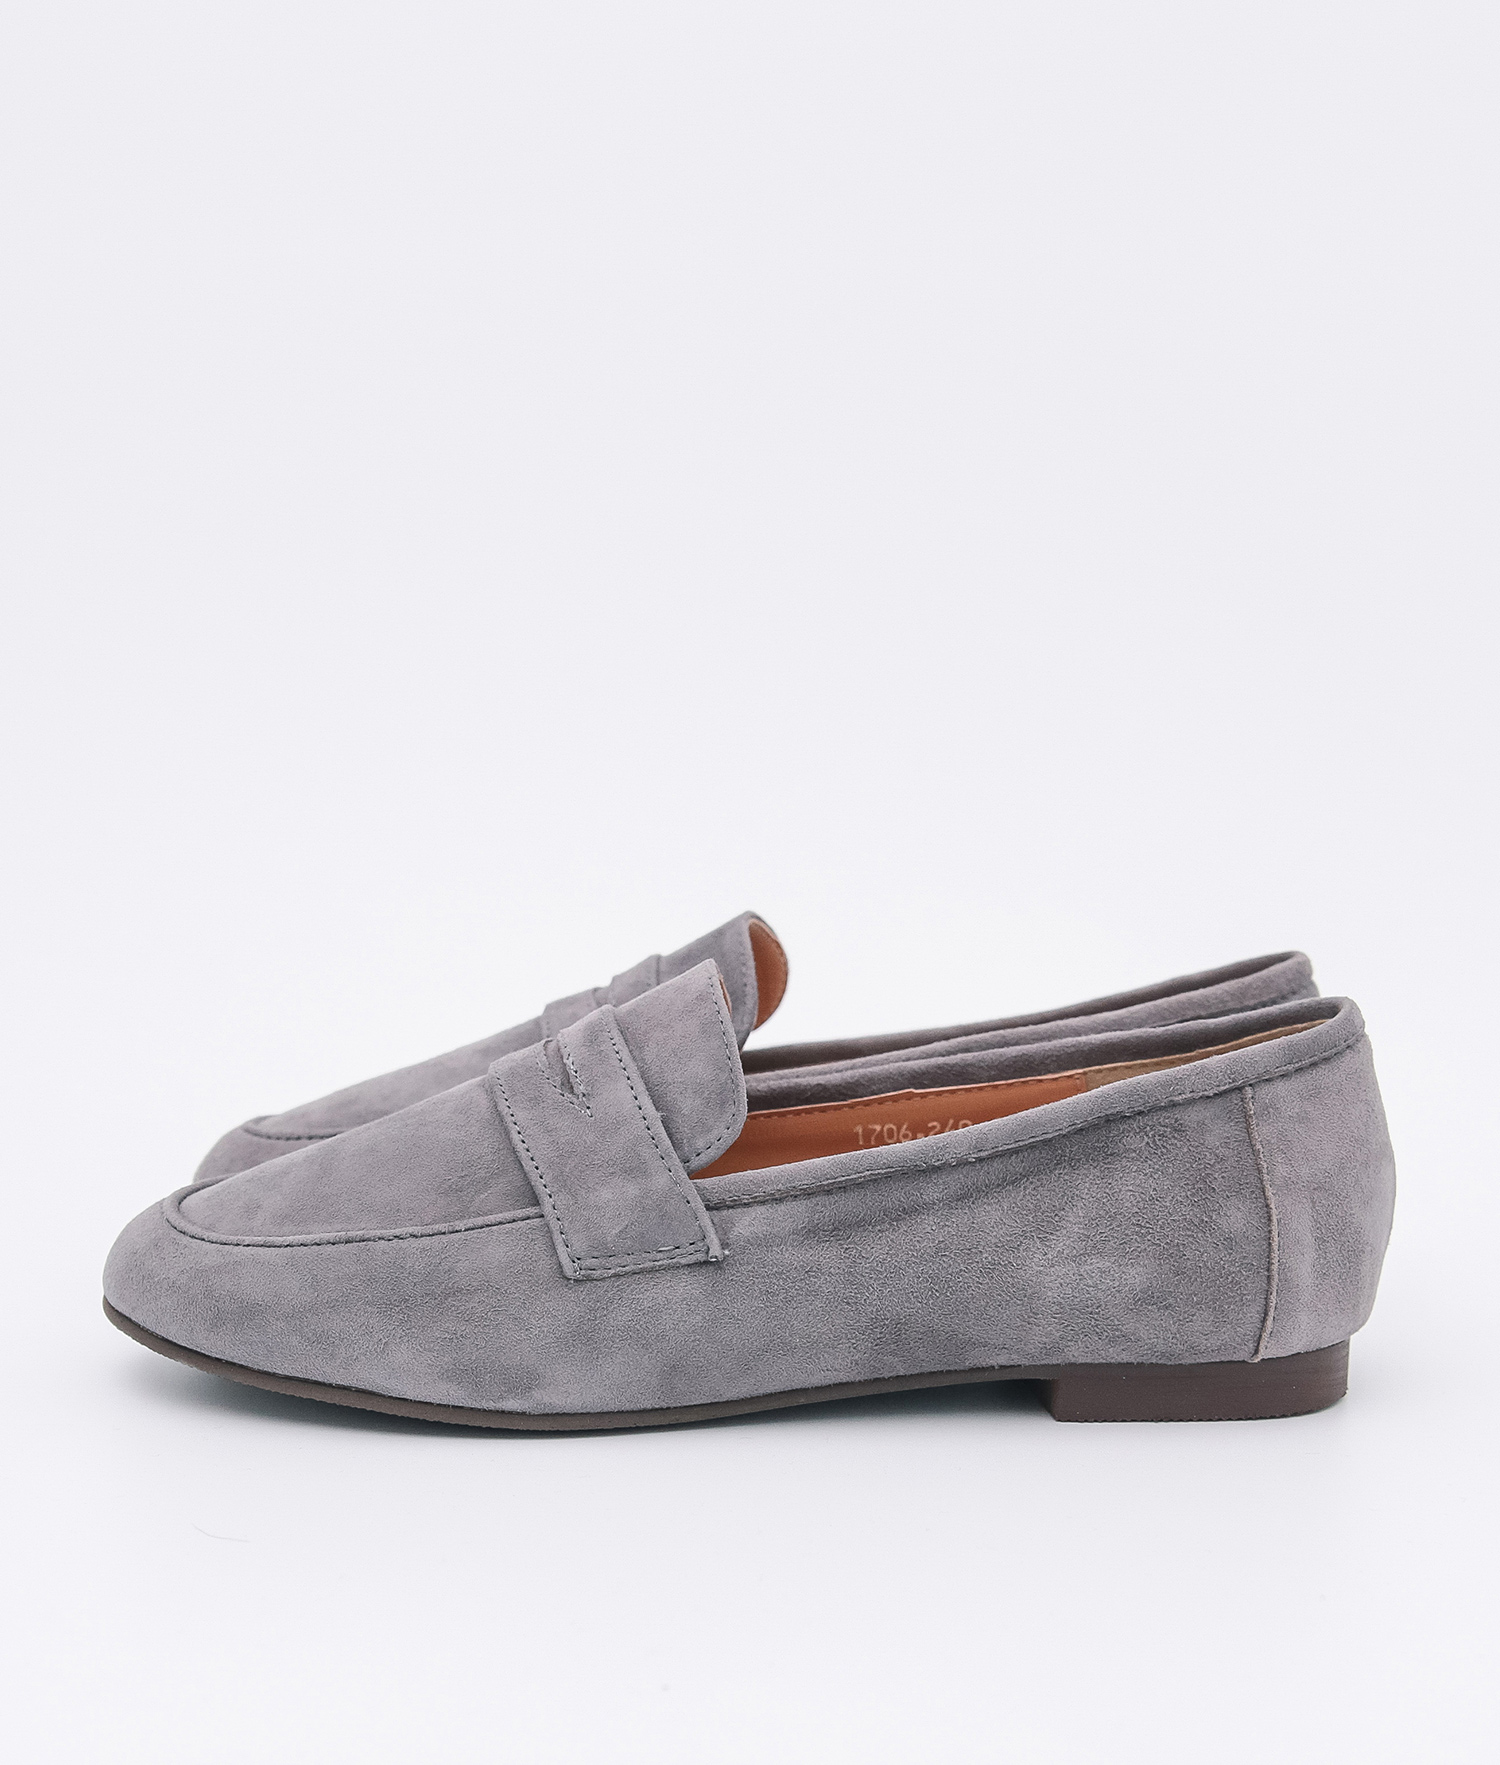 3c23e4a7999 AnnaKastle Womens Cute Suede Penny Loafers Gray